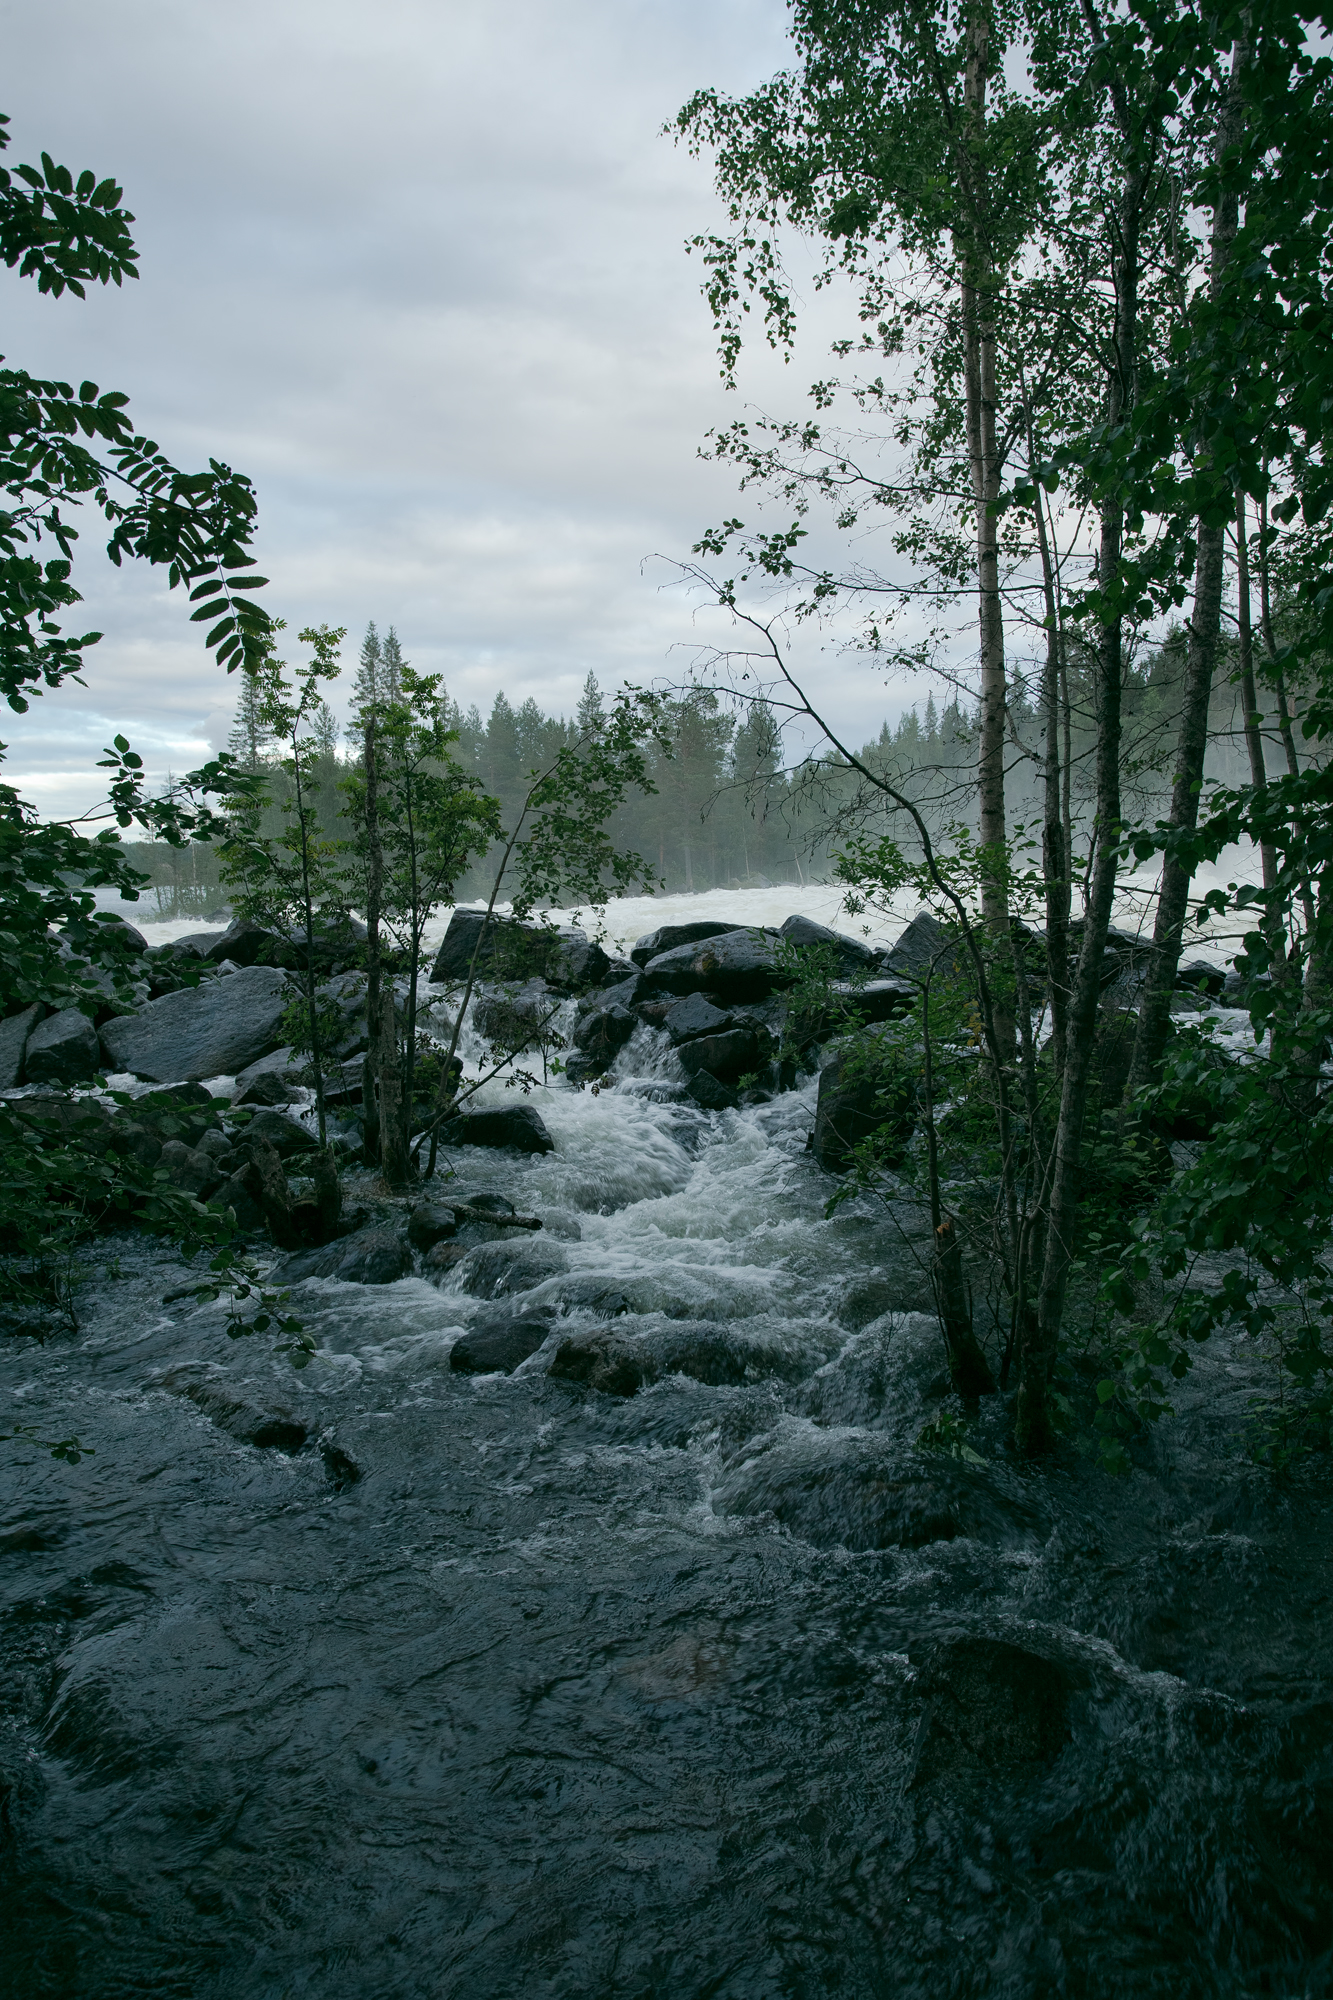 20150803_089surrounded-by-water_IT.jpg